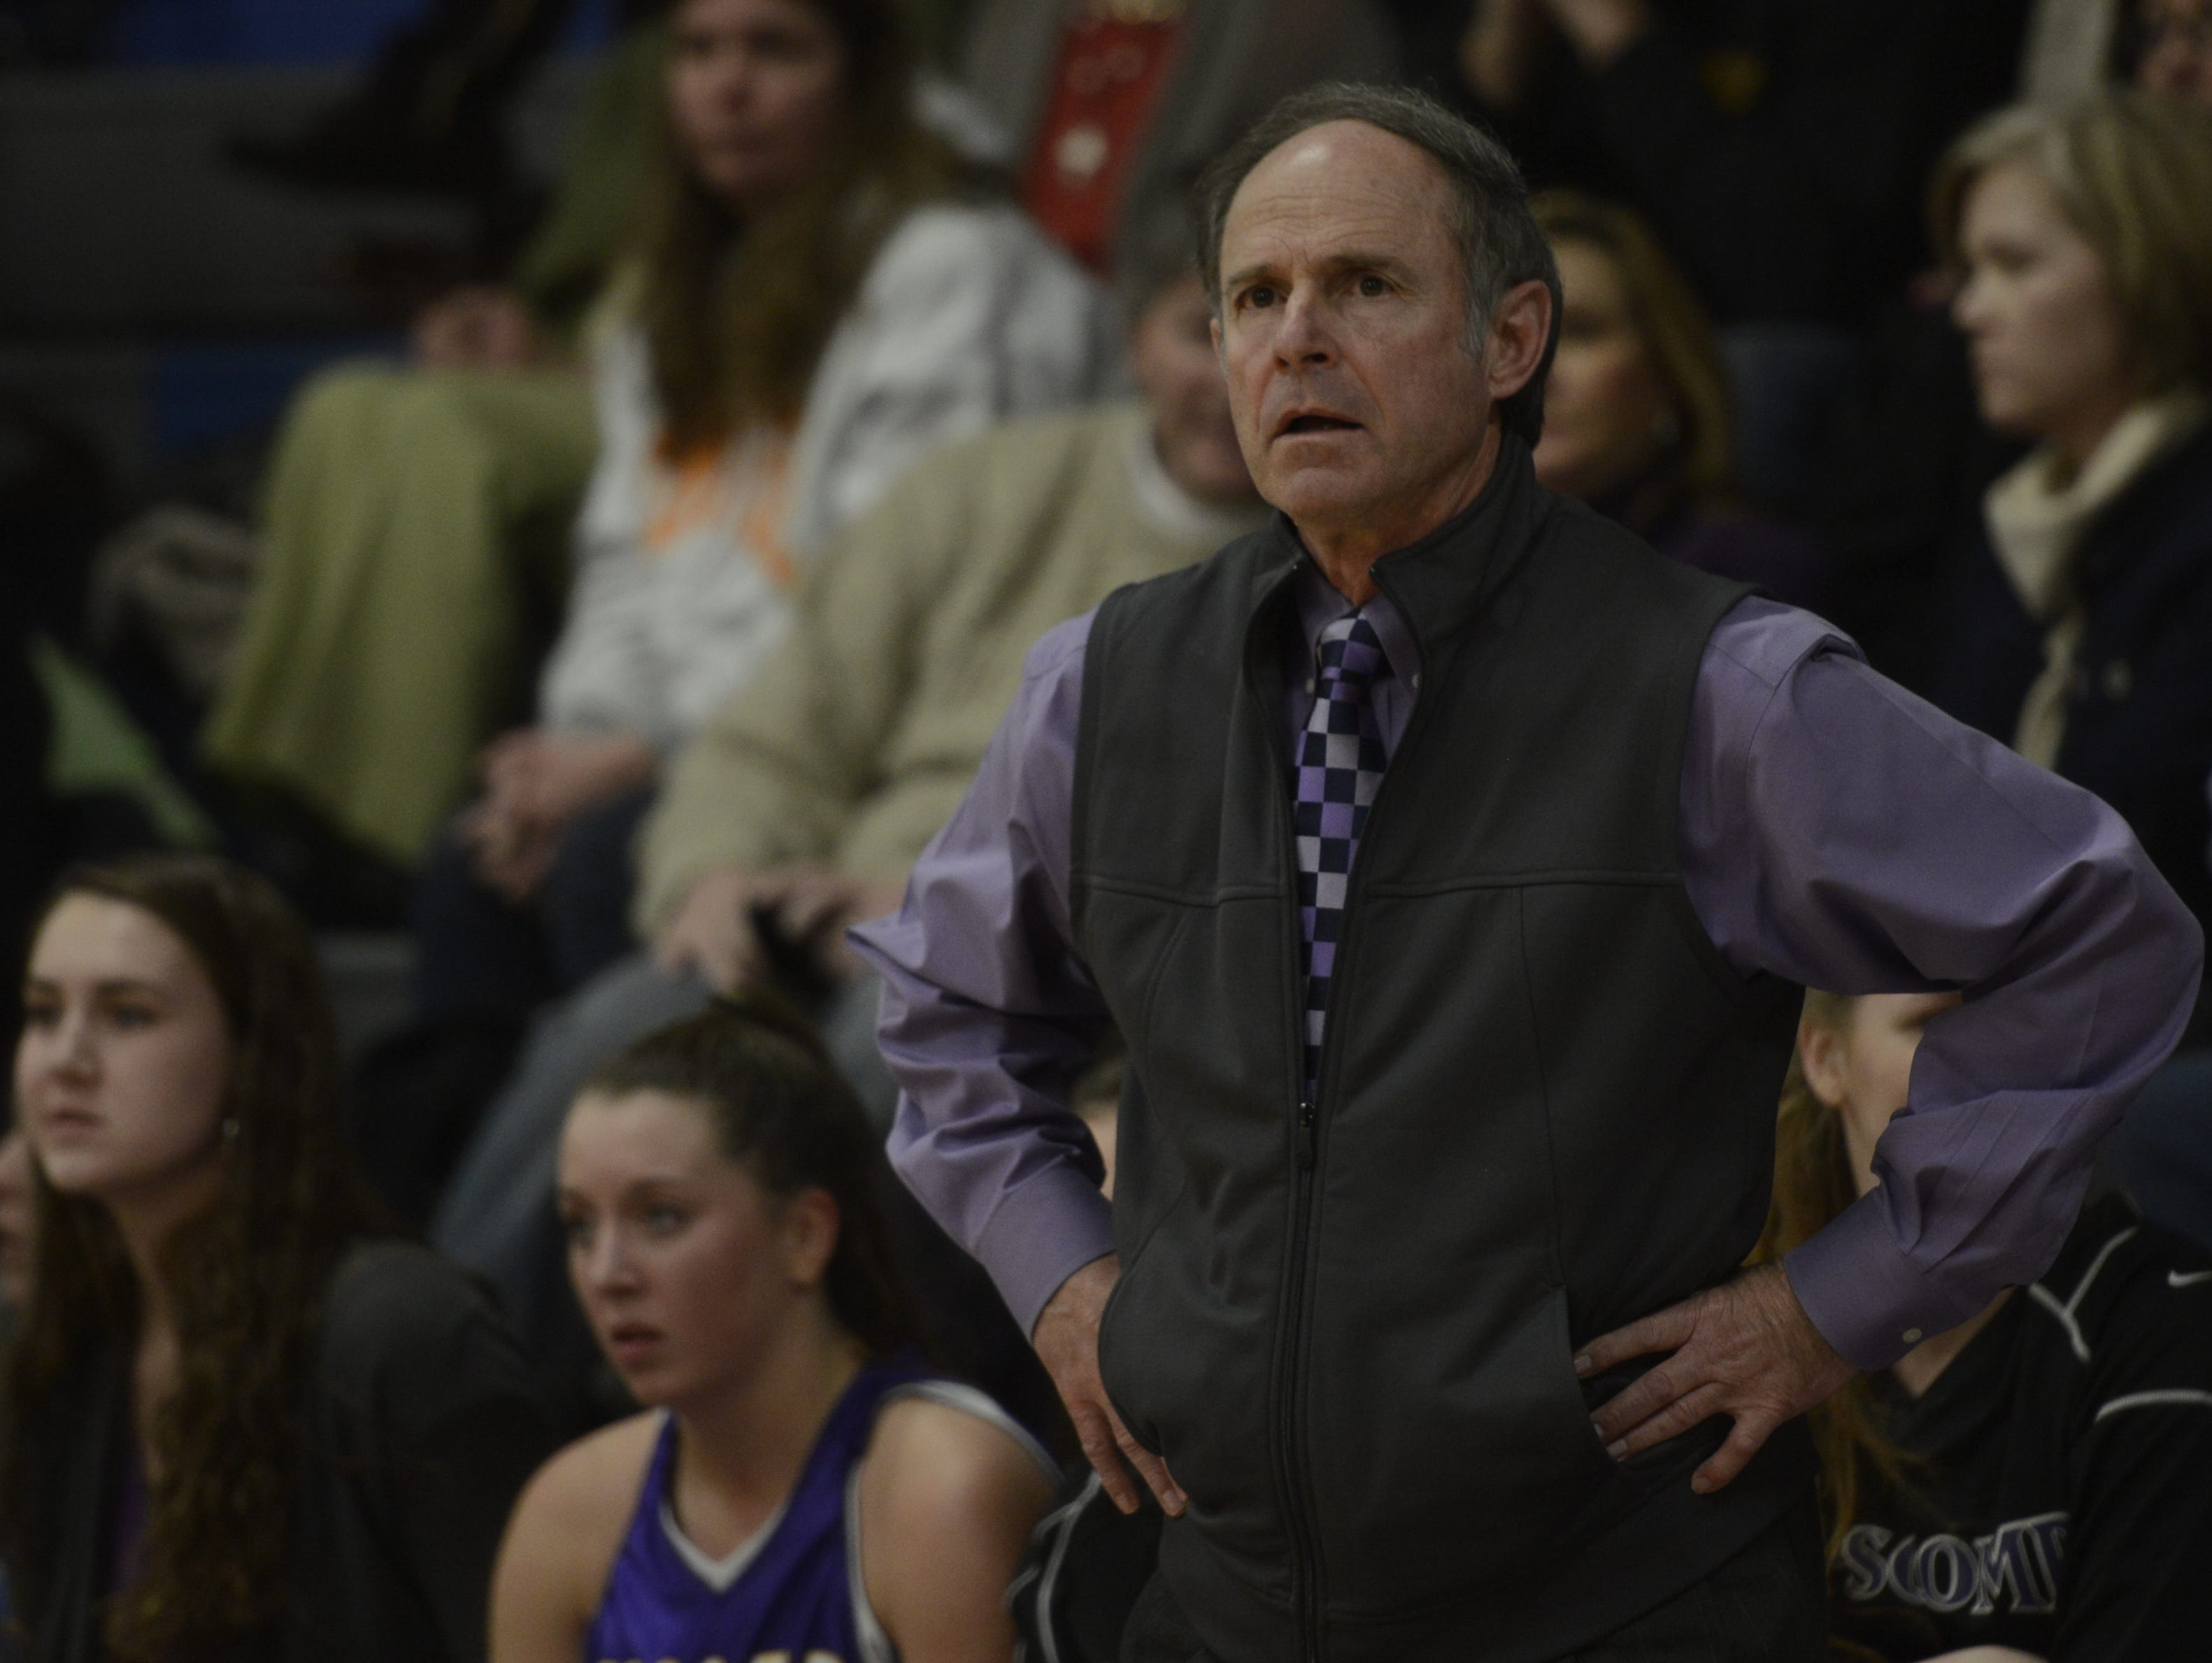 Lipscomb coach Ernie Smith has led the Lady Mustangs to 30 district and region titles, along with a Class AA state title, in 38 season as head coach.